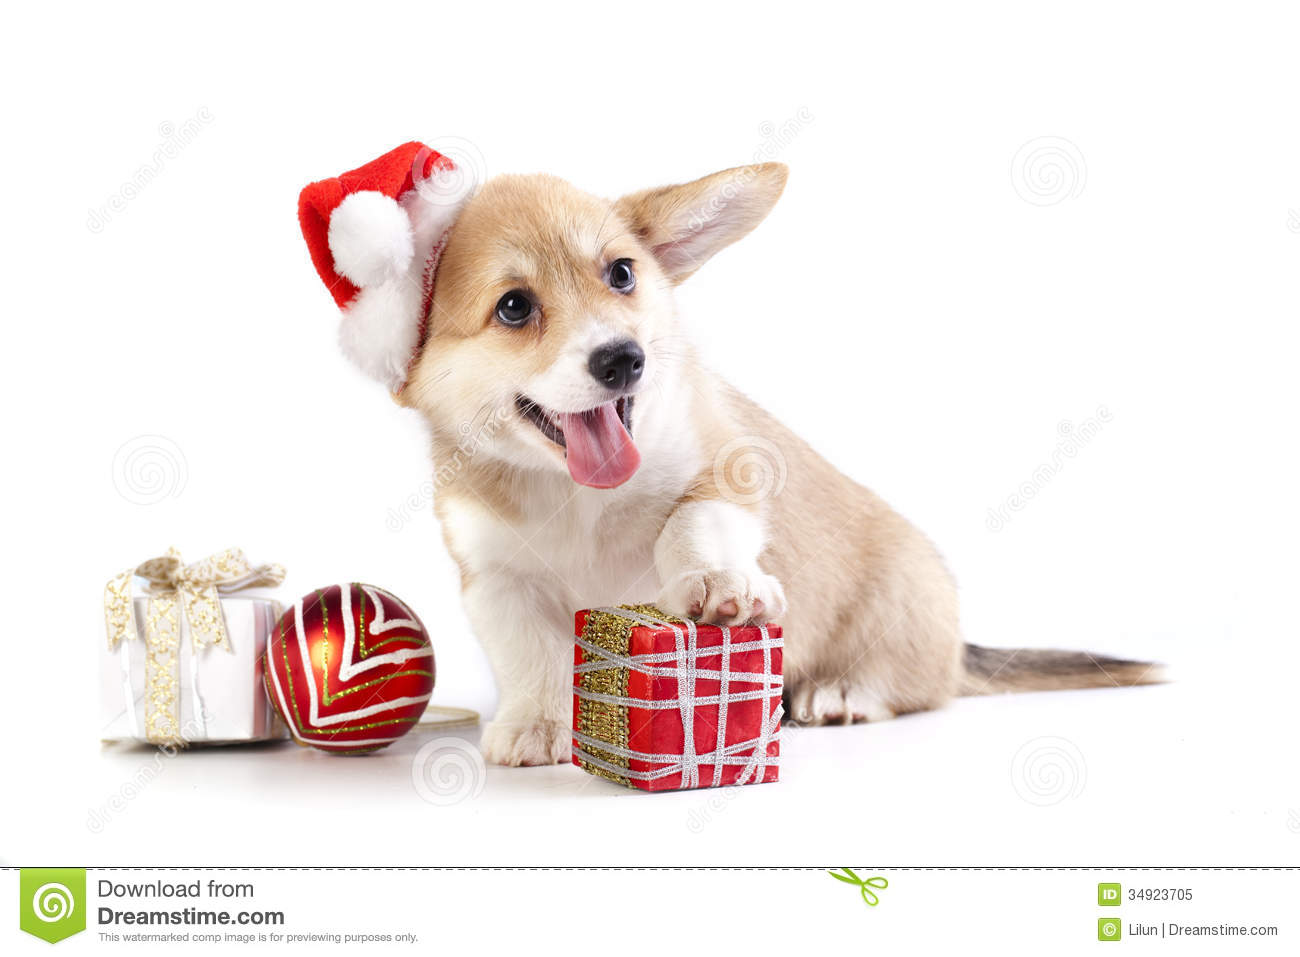 Pembroke Welsh Corgi Puppy Royalty Free Stock Photo - Image: 34923705